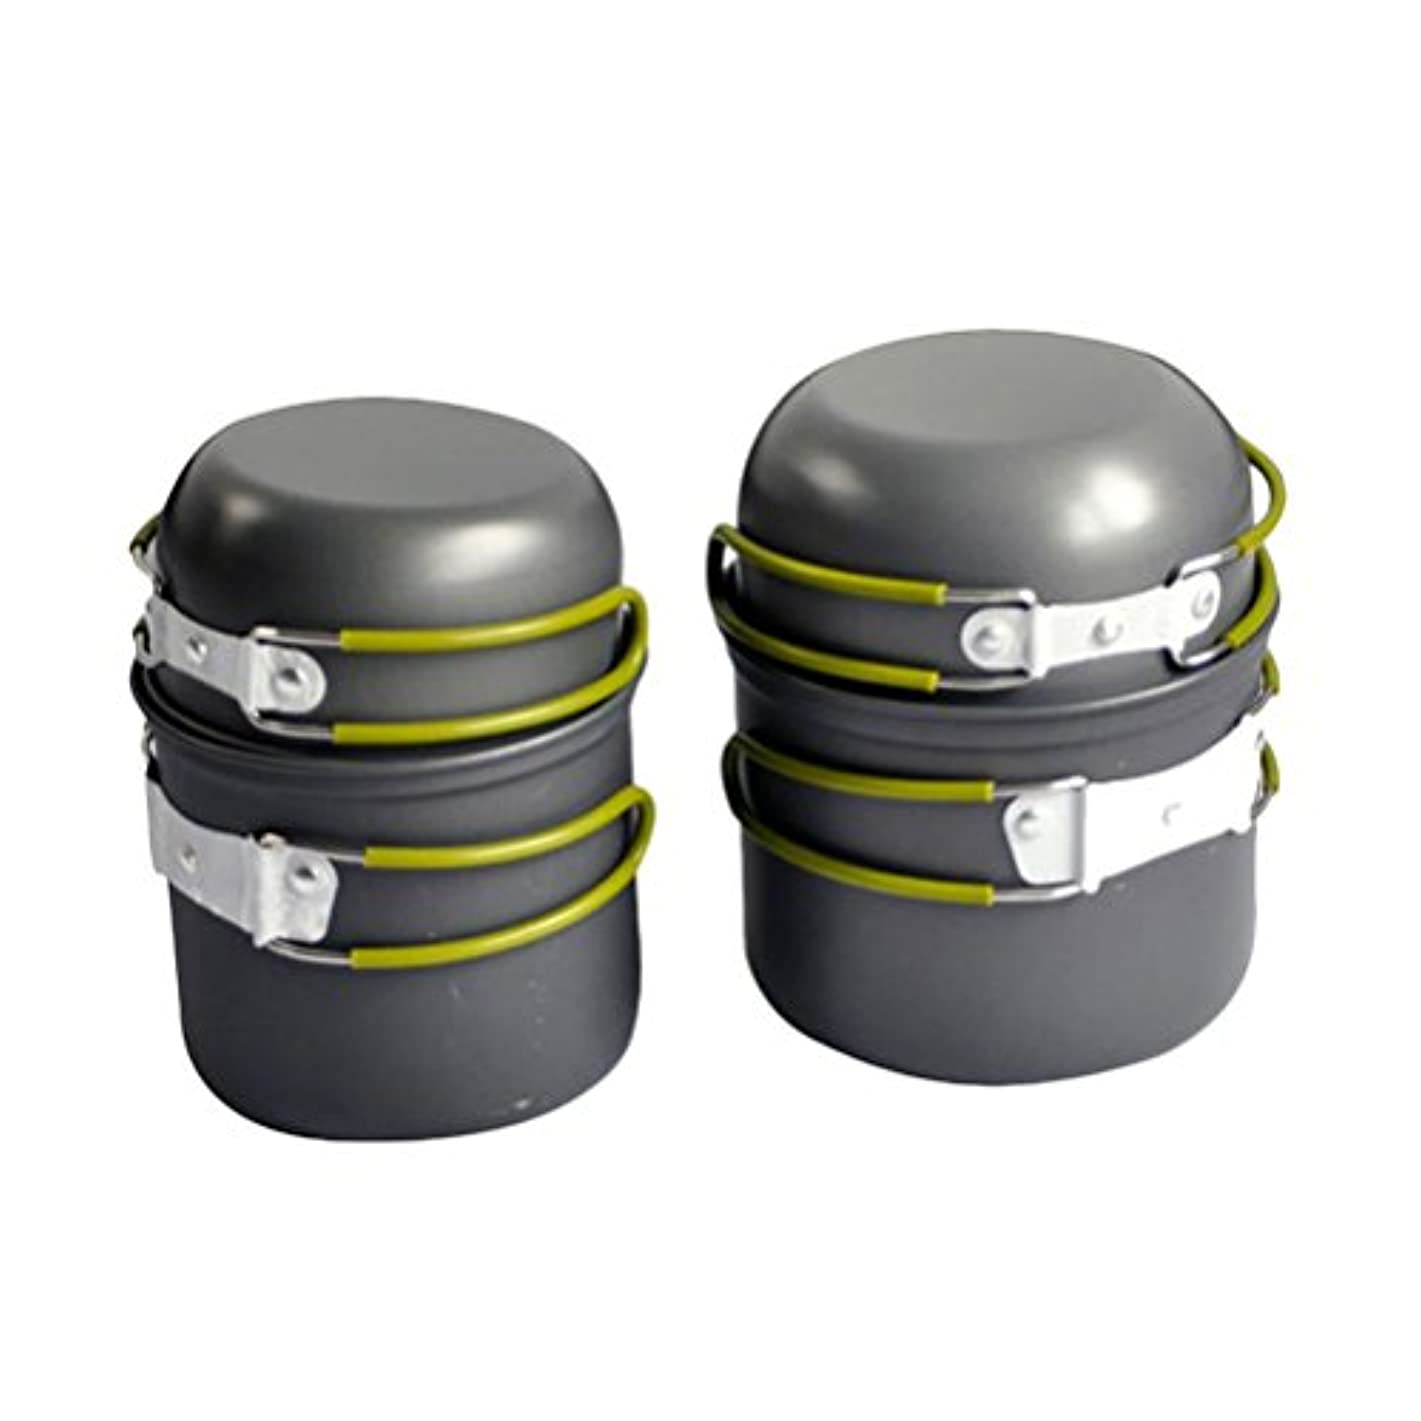 ユーモア移動するガイドラインZhhlinyuan Hi-Quality 4X Picnic Cooking Set Anodised Aluminium Pot Pan Cookware Outdoor Camping Hiking